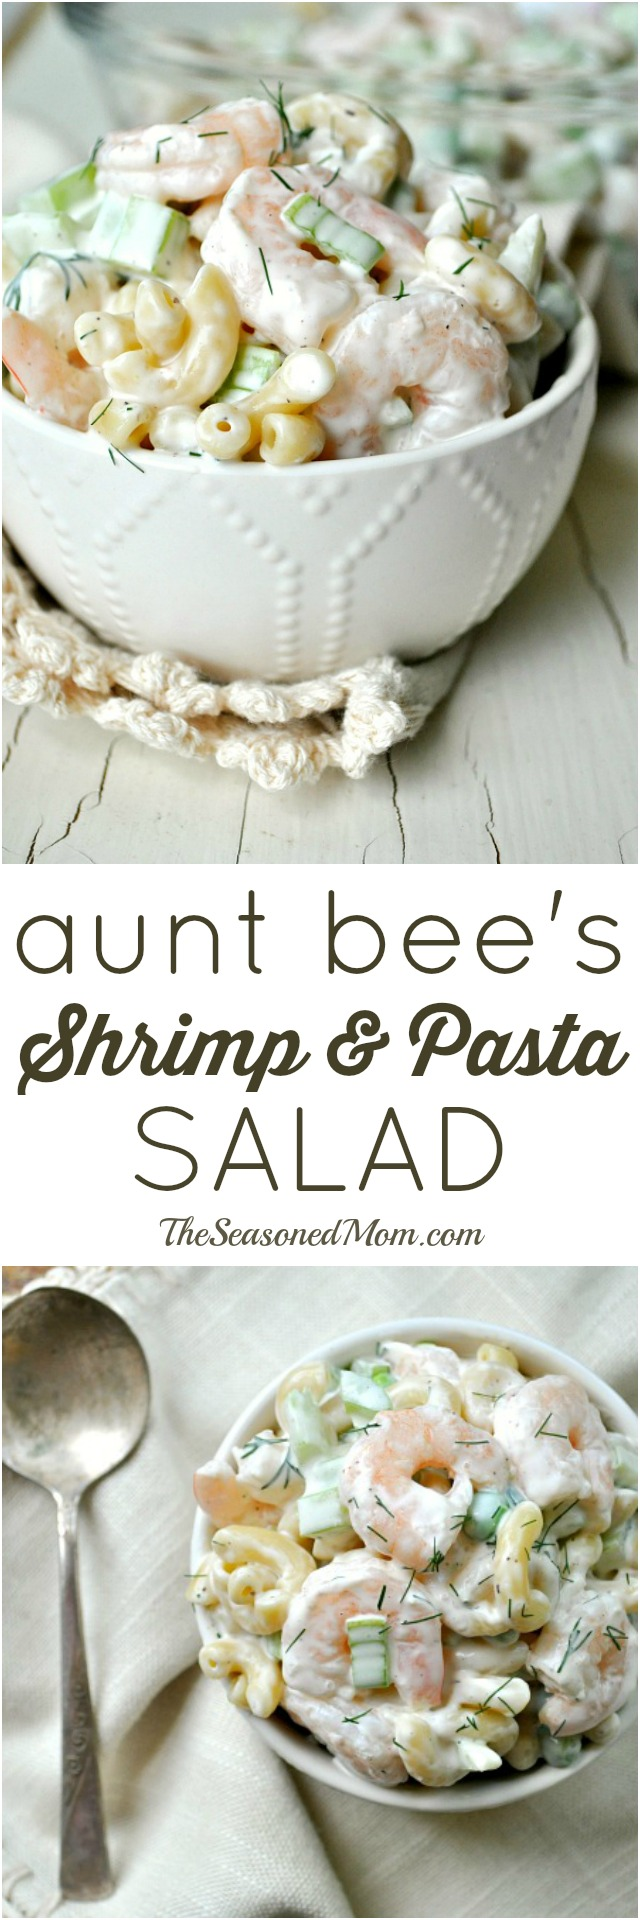 Aunt-Bees-Shrimp-and-Pasta-Salad